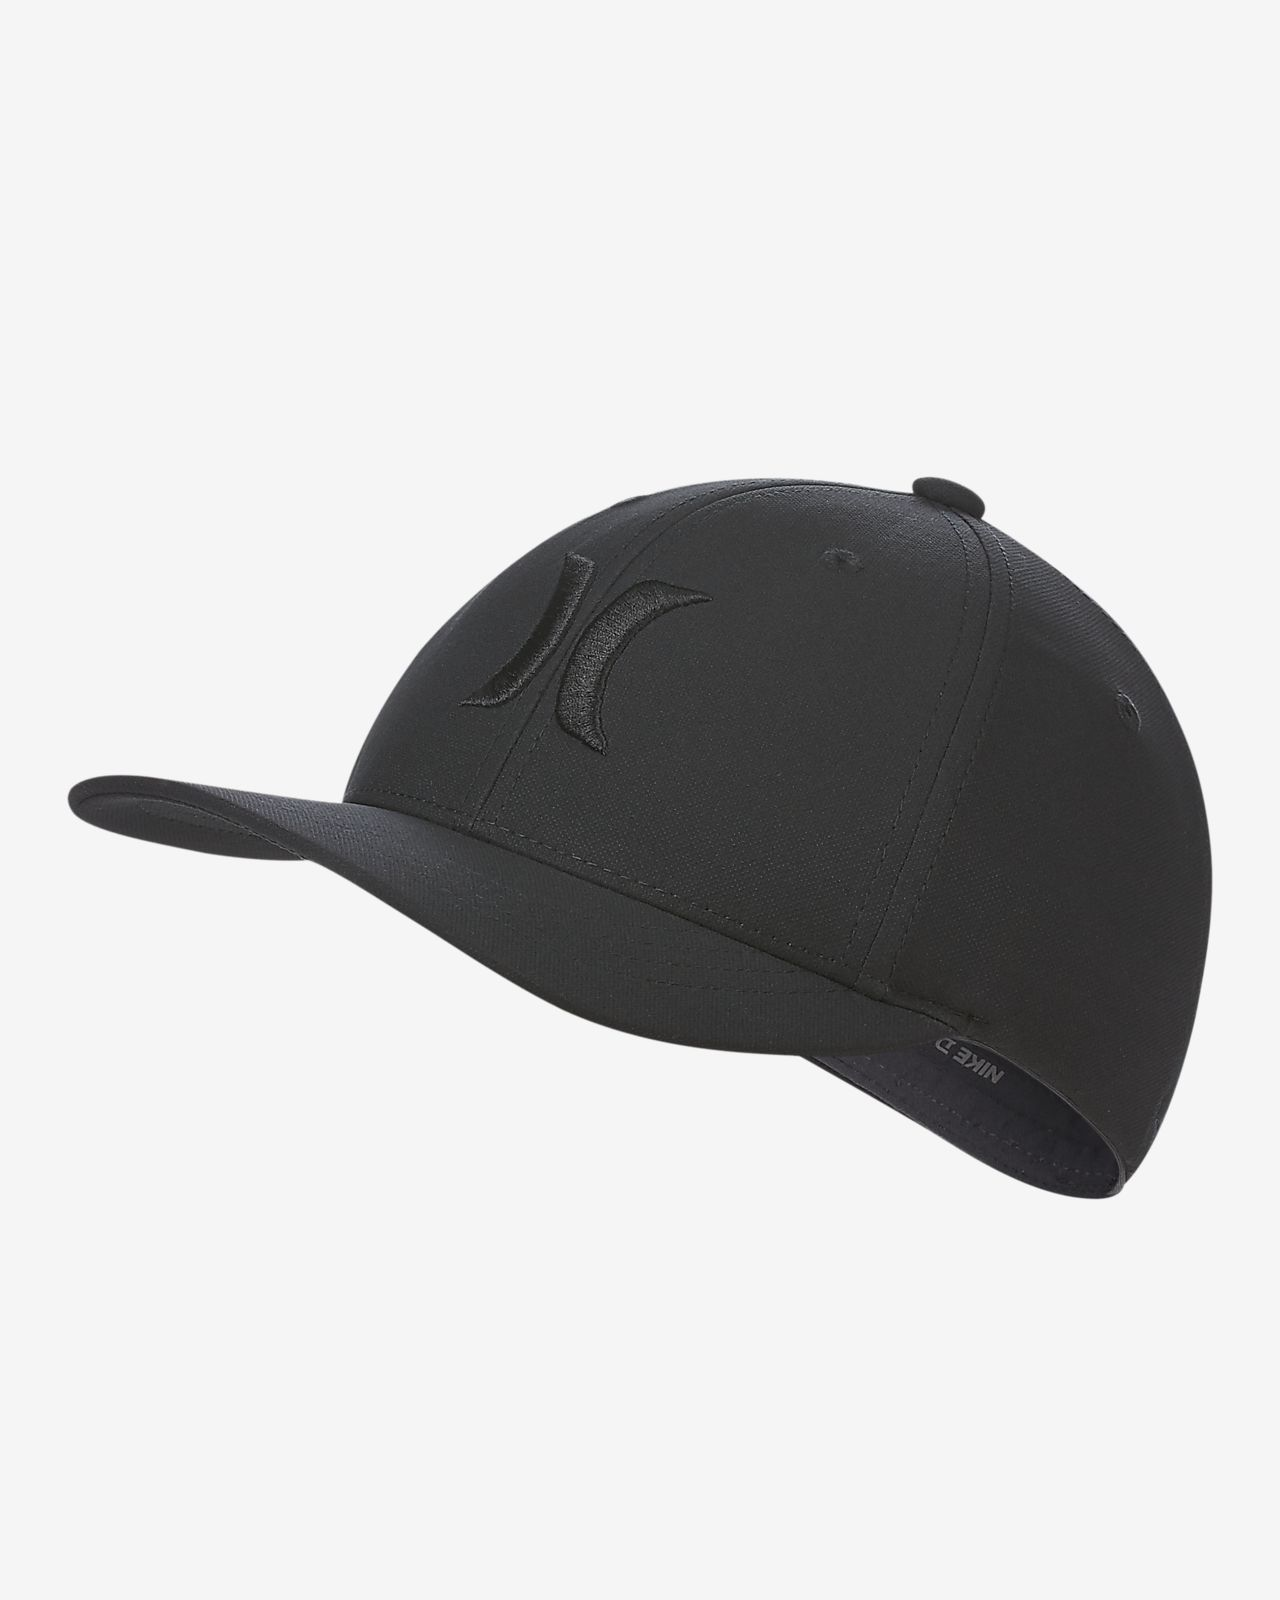 Hurley Dri-FIT One And Only Boys' Hat